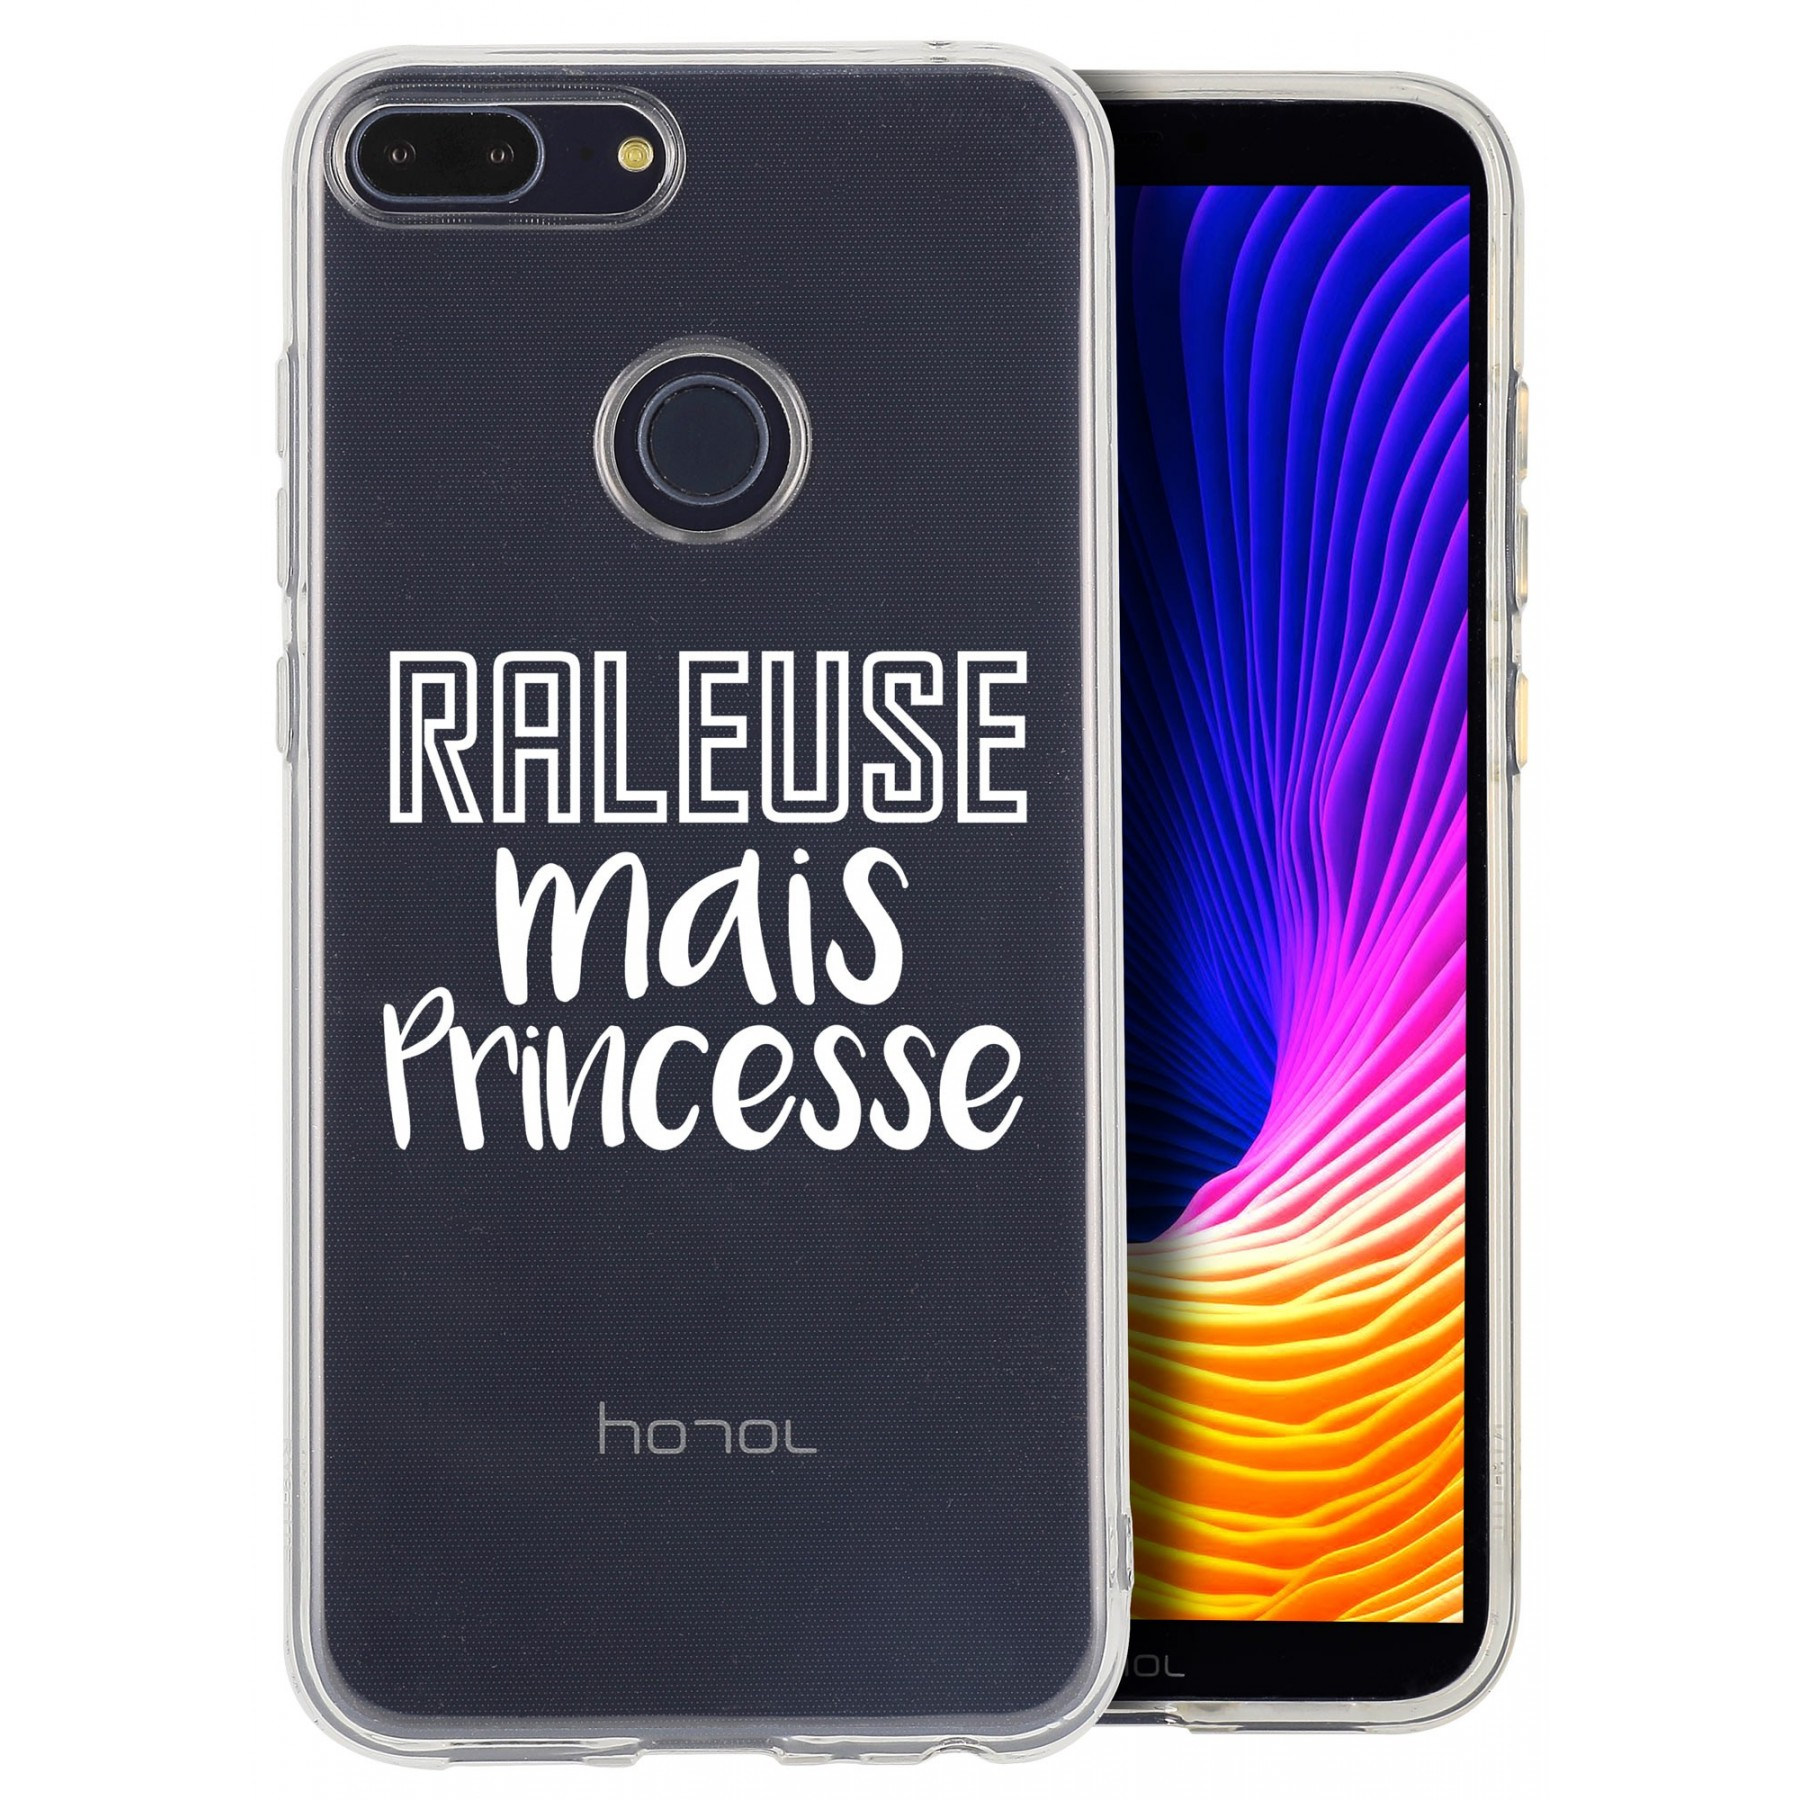 coque iphone xr raleuse